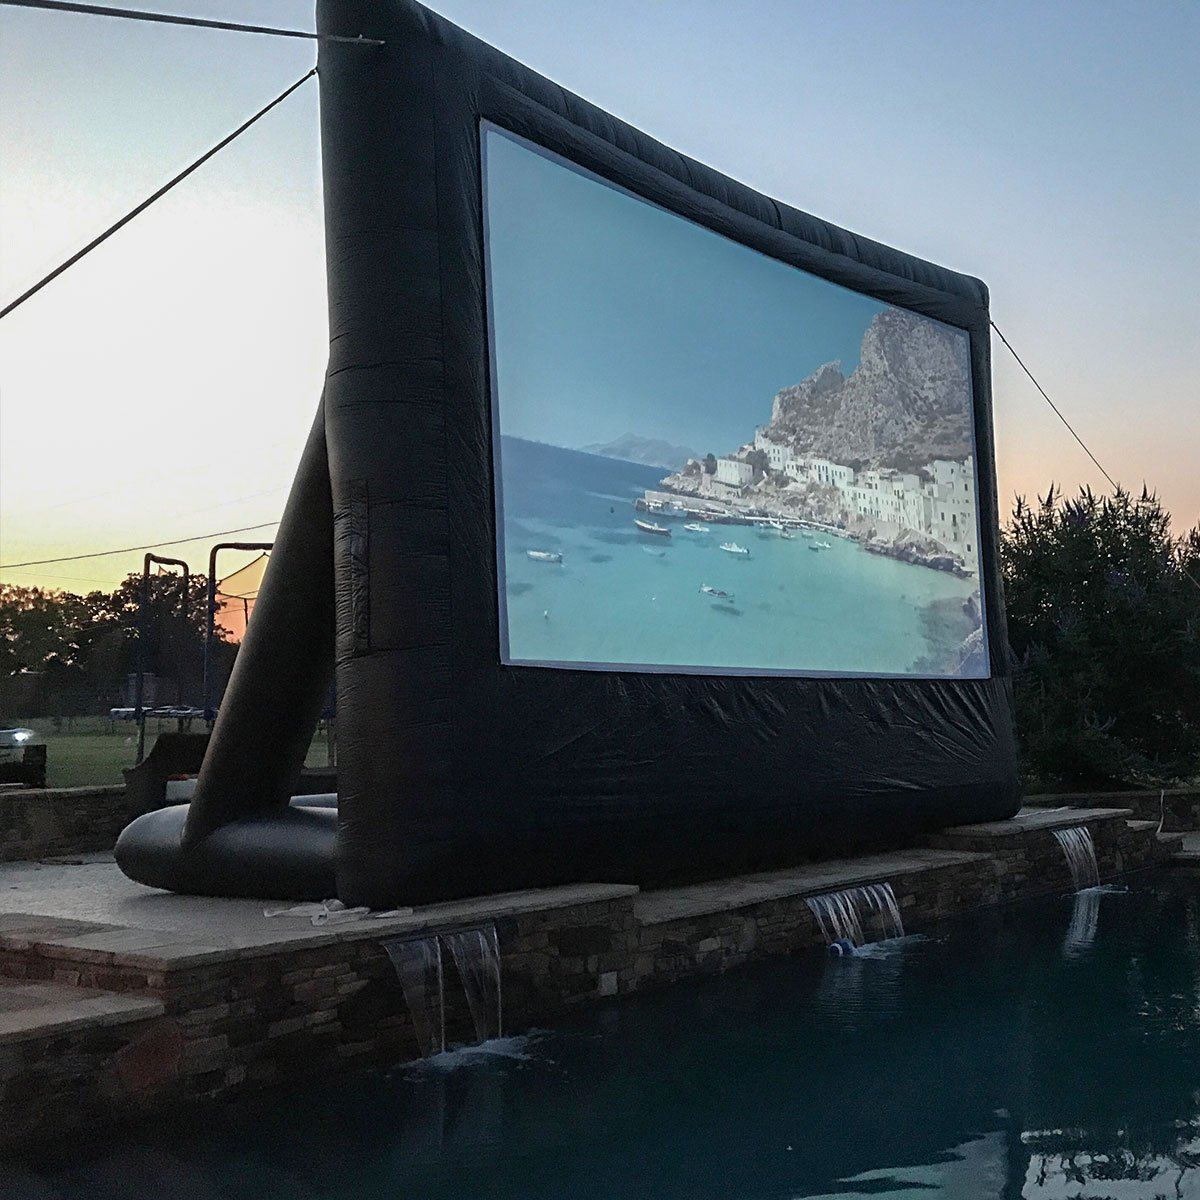 Open Air Cinema P-20 20' x 11' Pro Inflatable Projection Screen